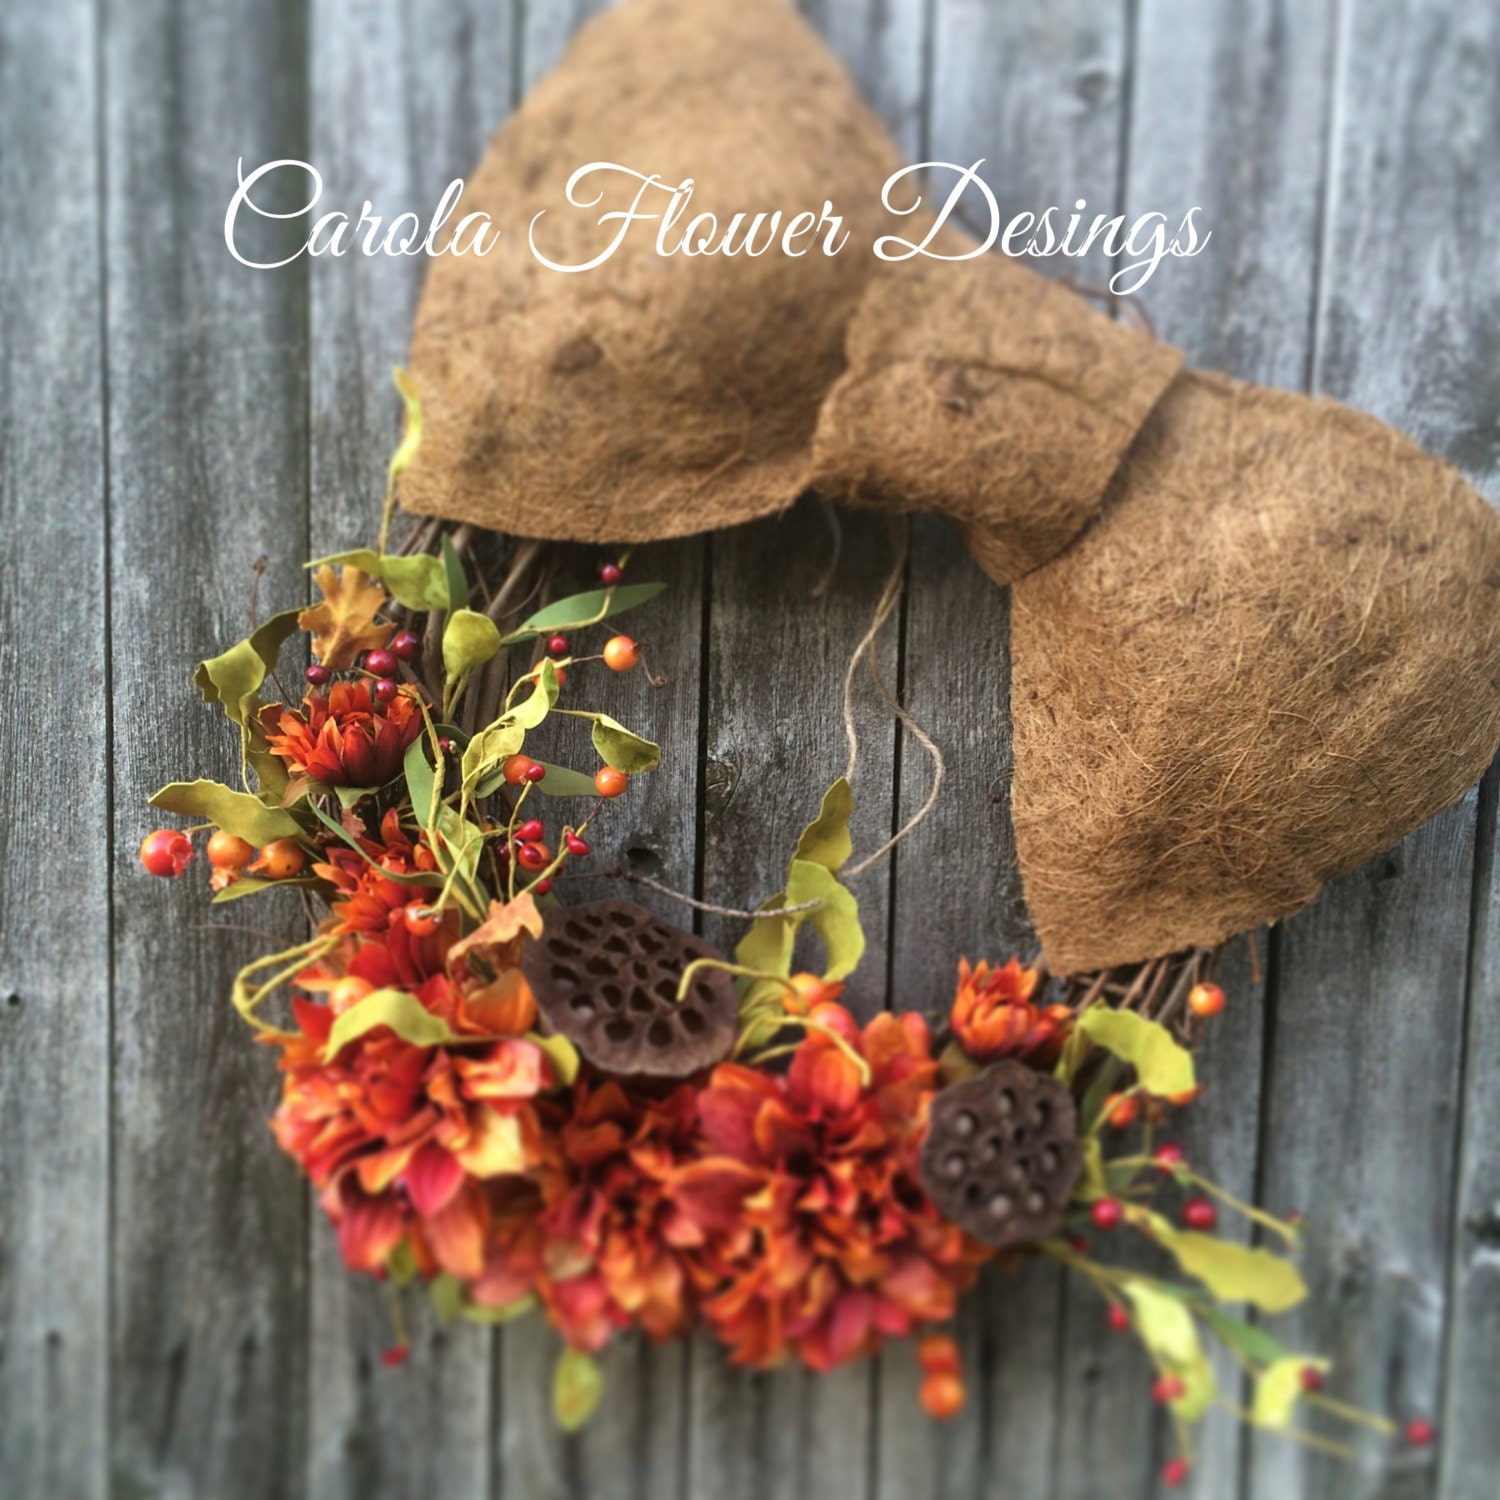 sale discount 20 off fall wreaths fall by carolaflowerdesigns. Black Bedroom Furniture Sets. Home Design Ideas